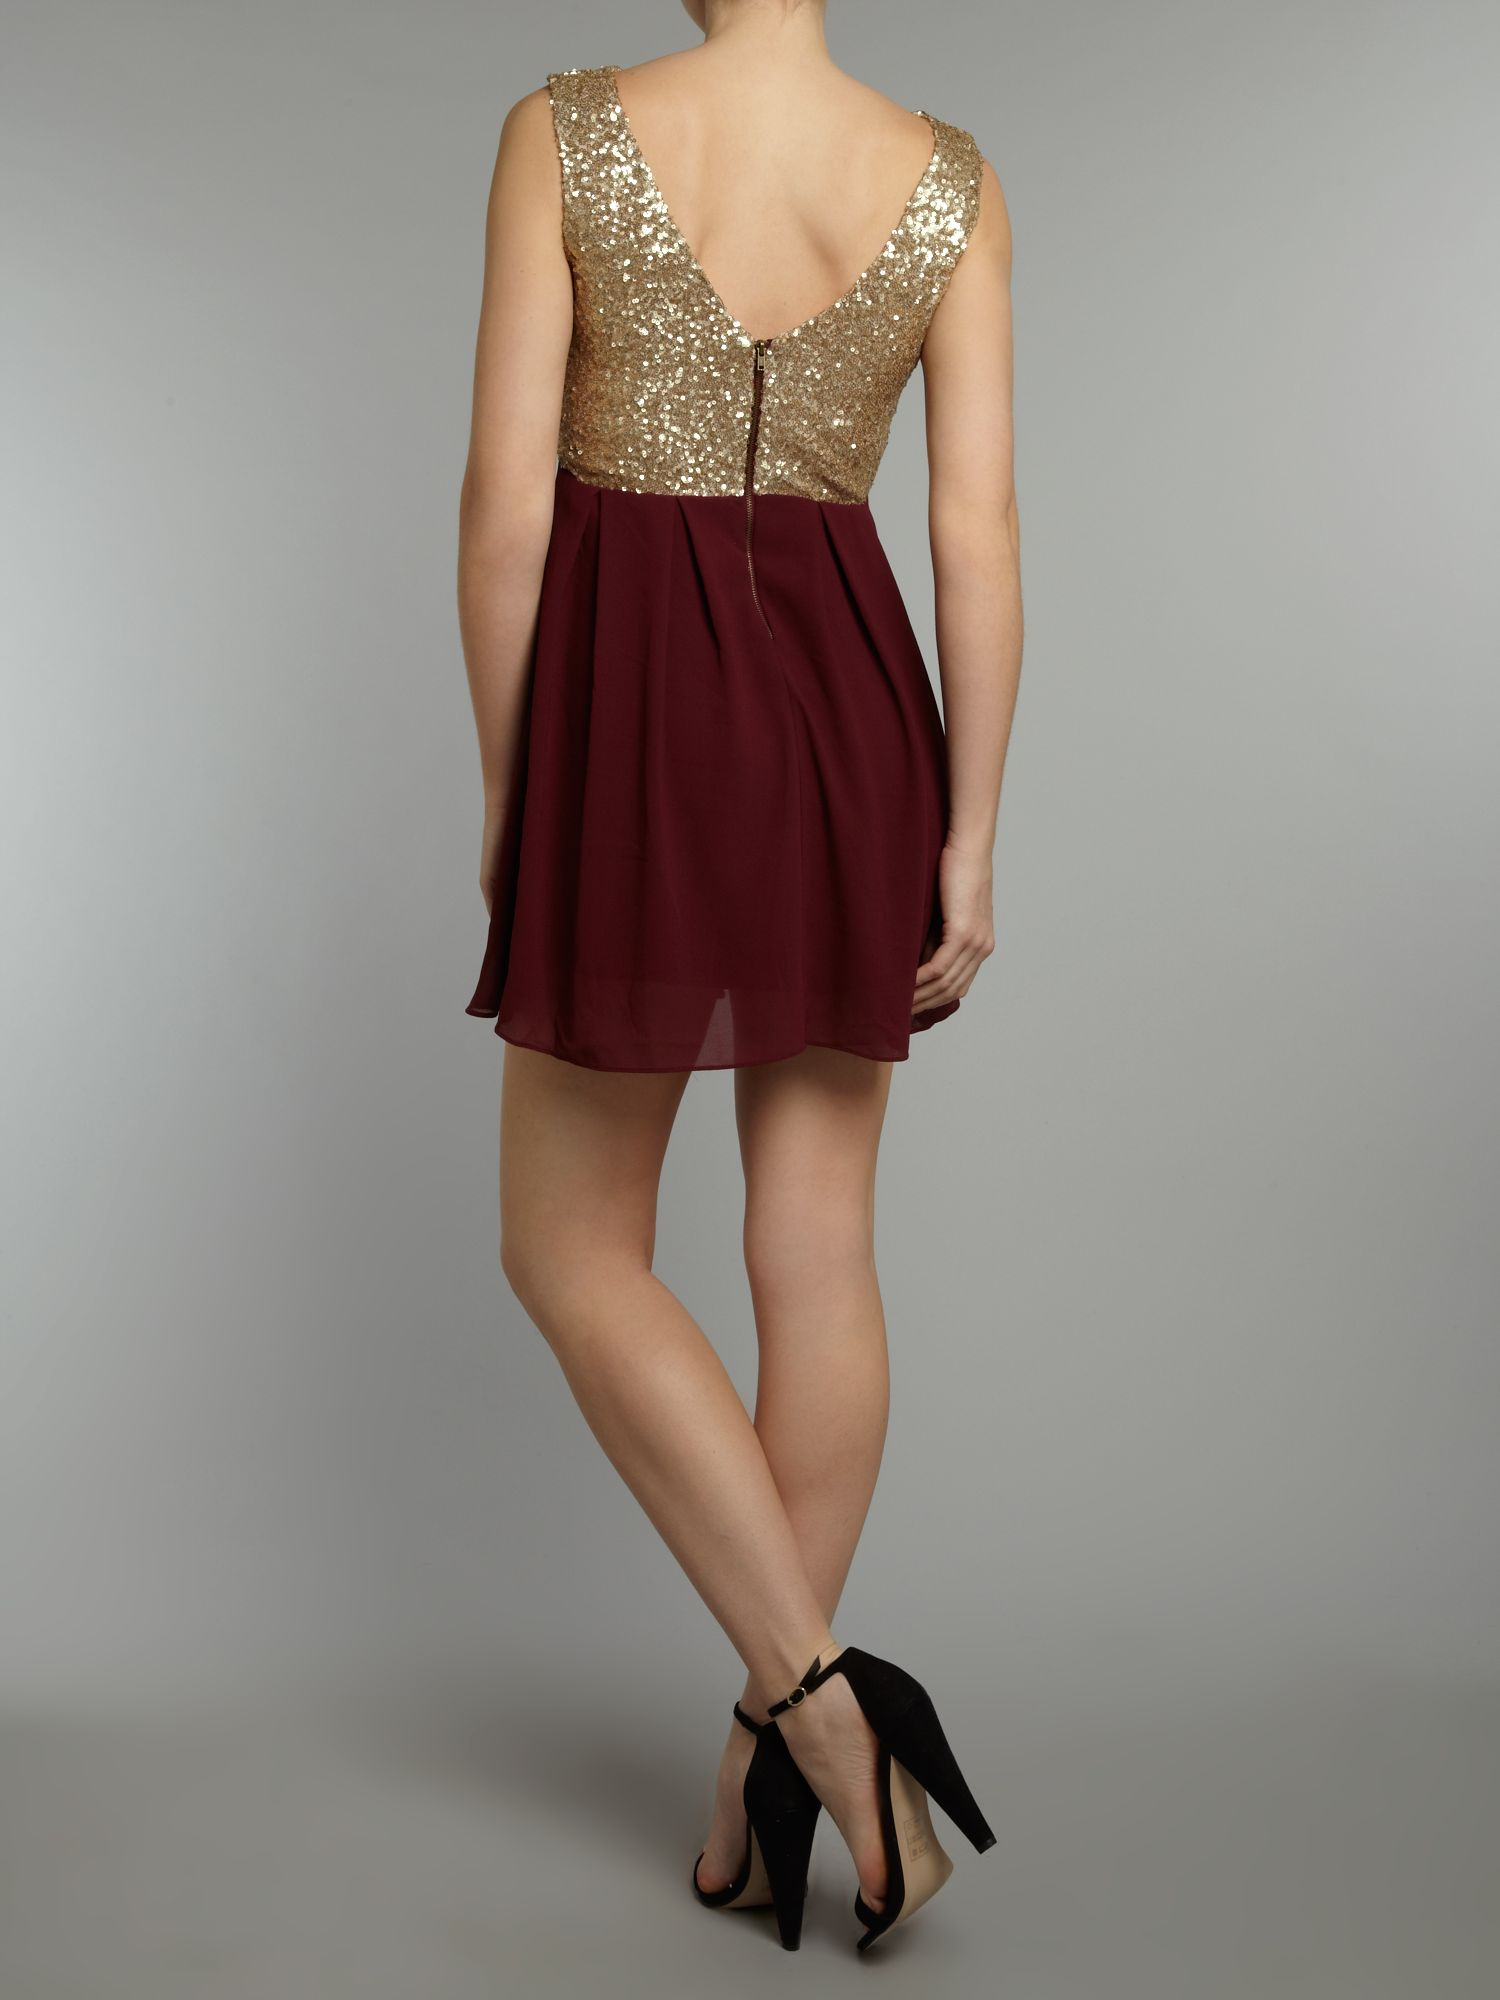 Sequin Sarah high low dress